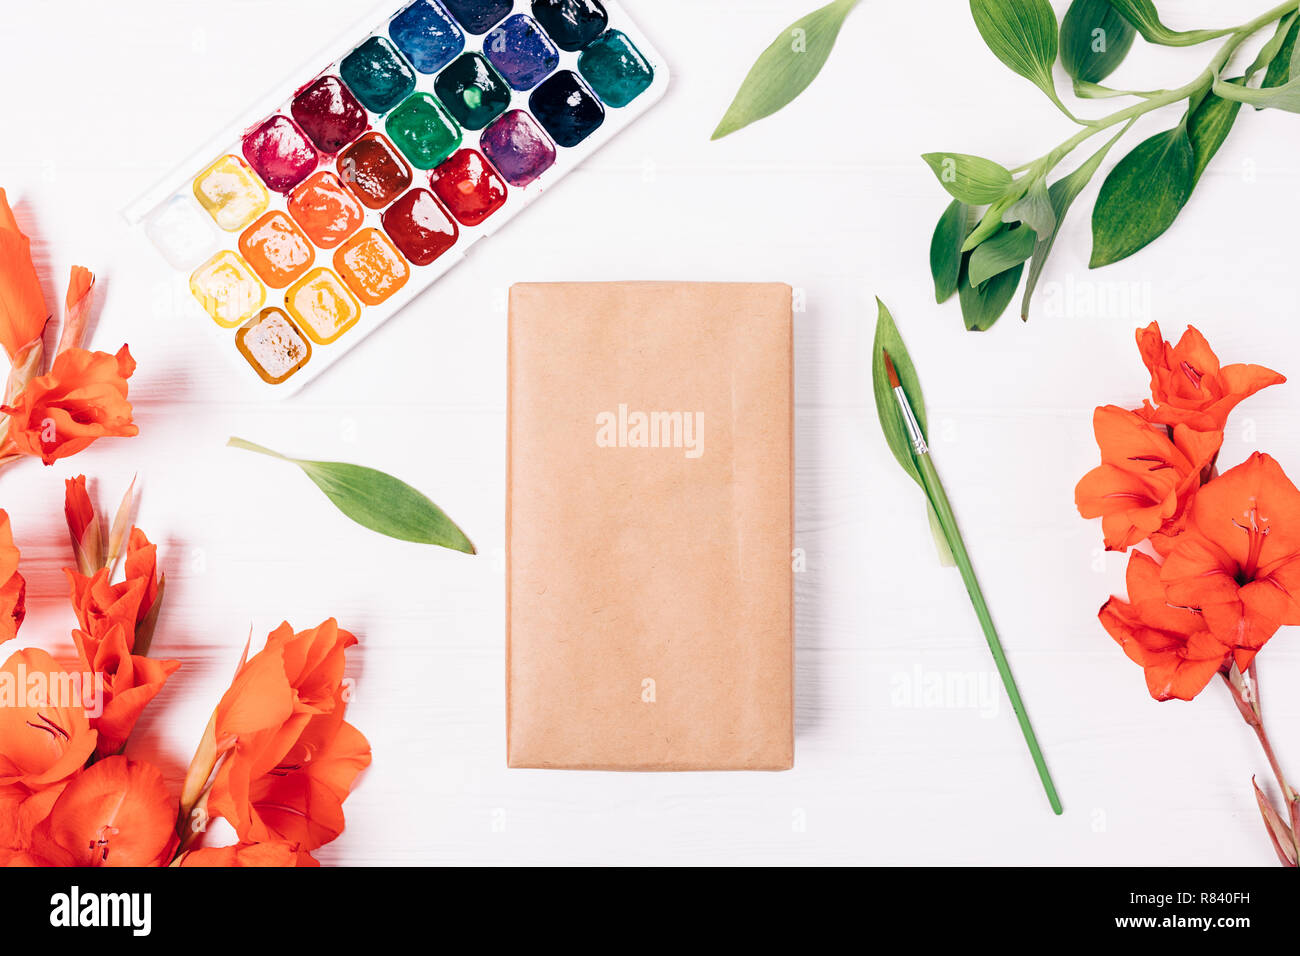 Blank gift box wrapped in crafting paper next to watercolor paints and brush among floral flat layout of red flowers and green leaves, top view on a w - Stock Image